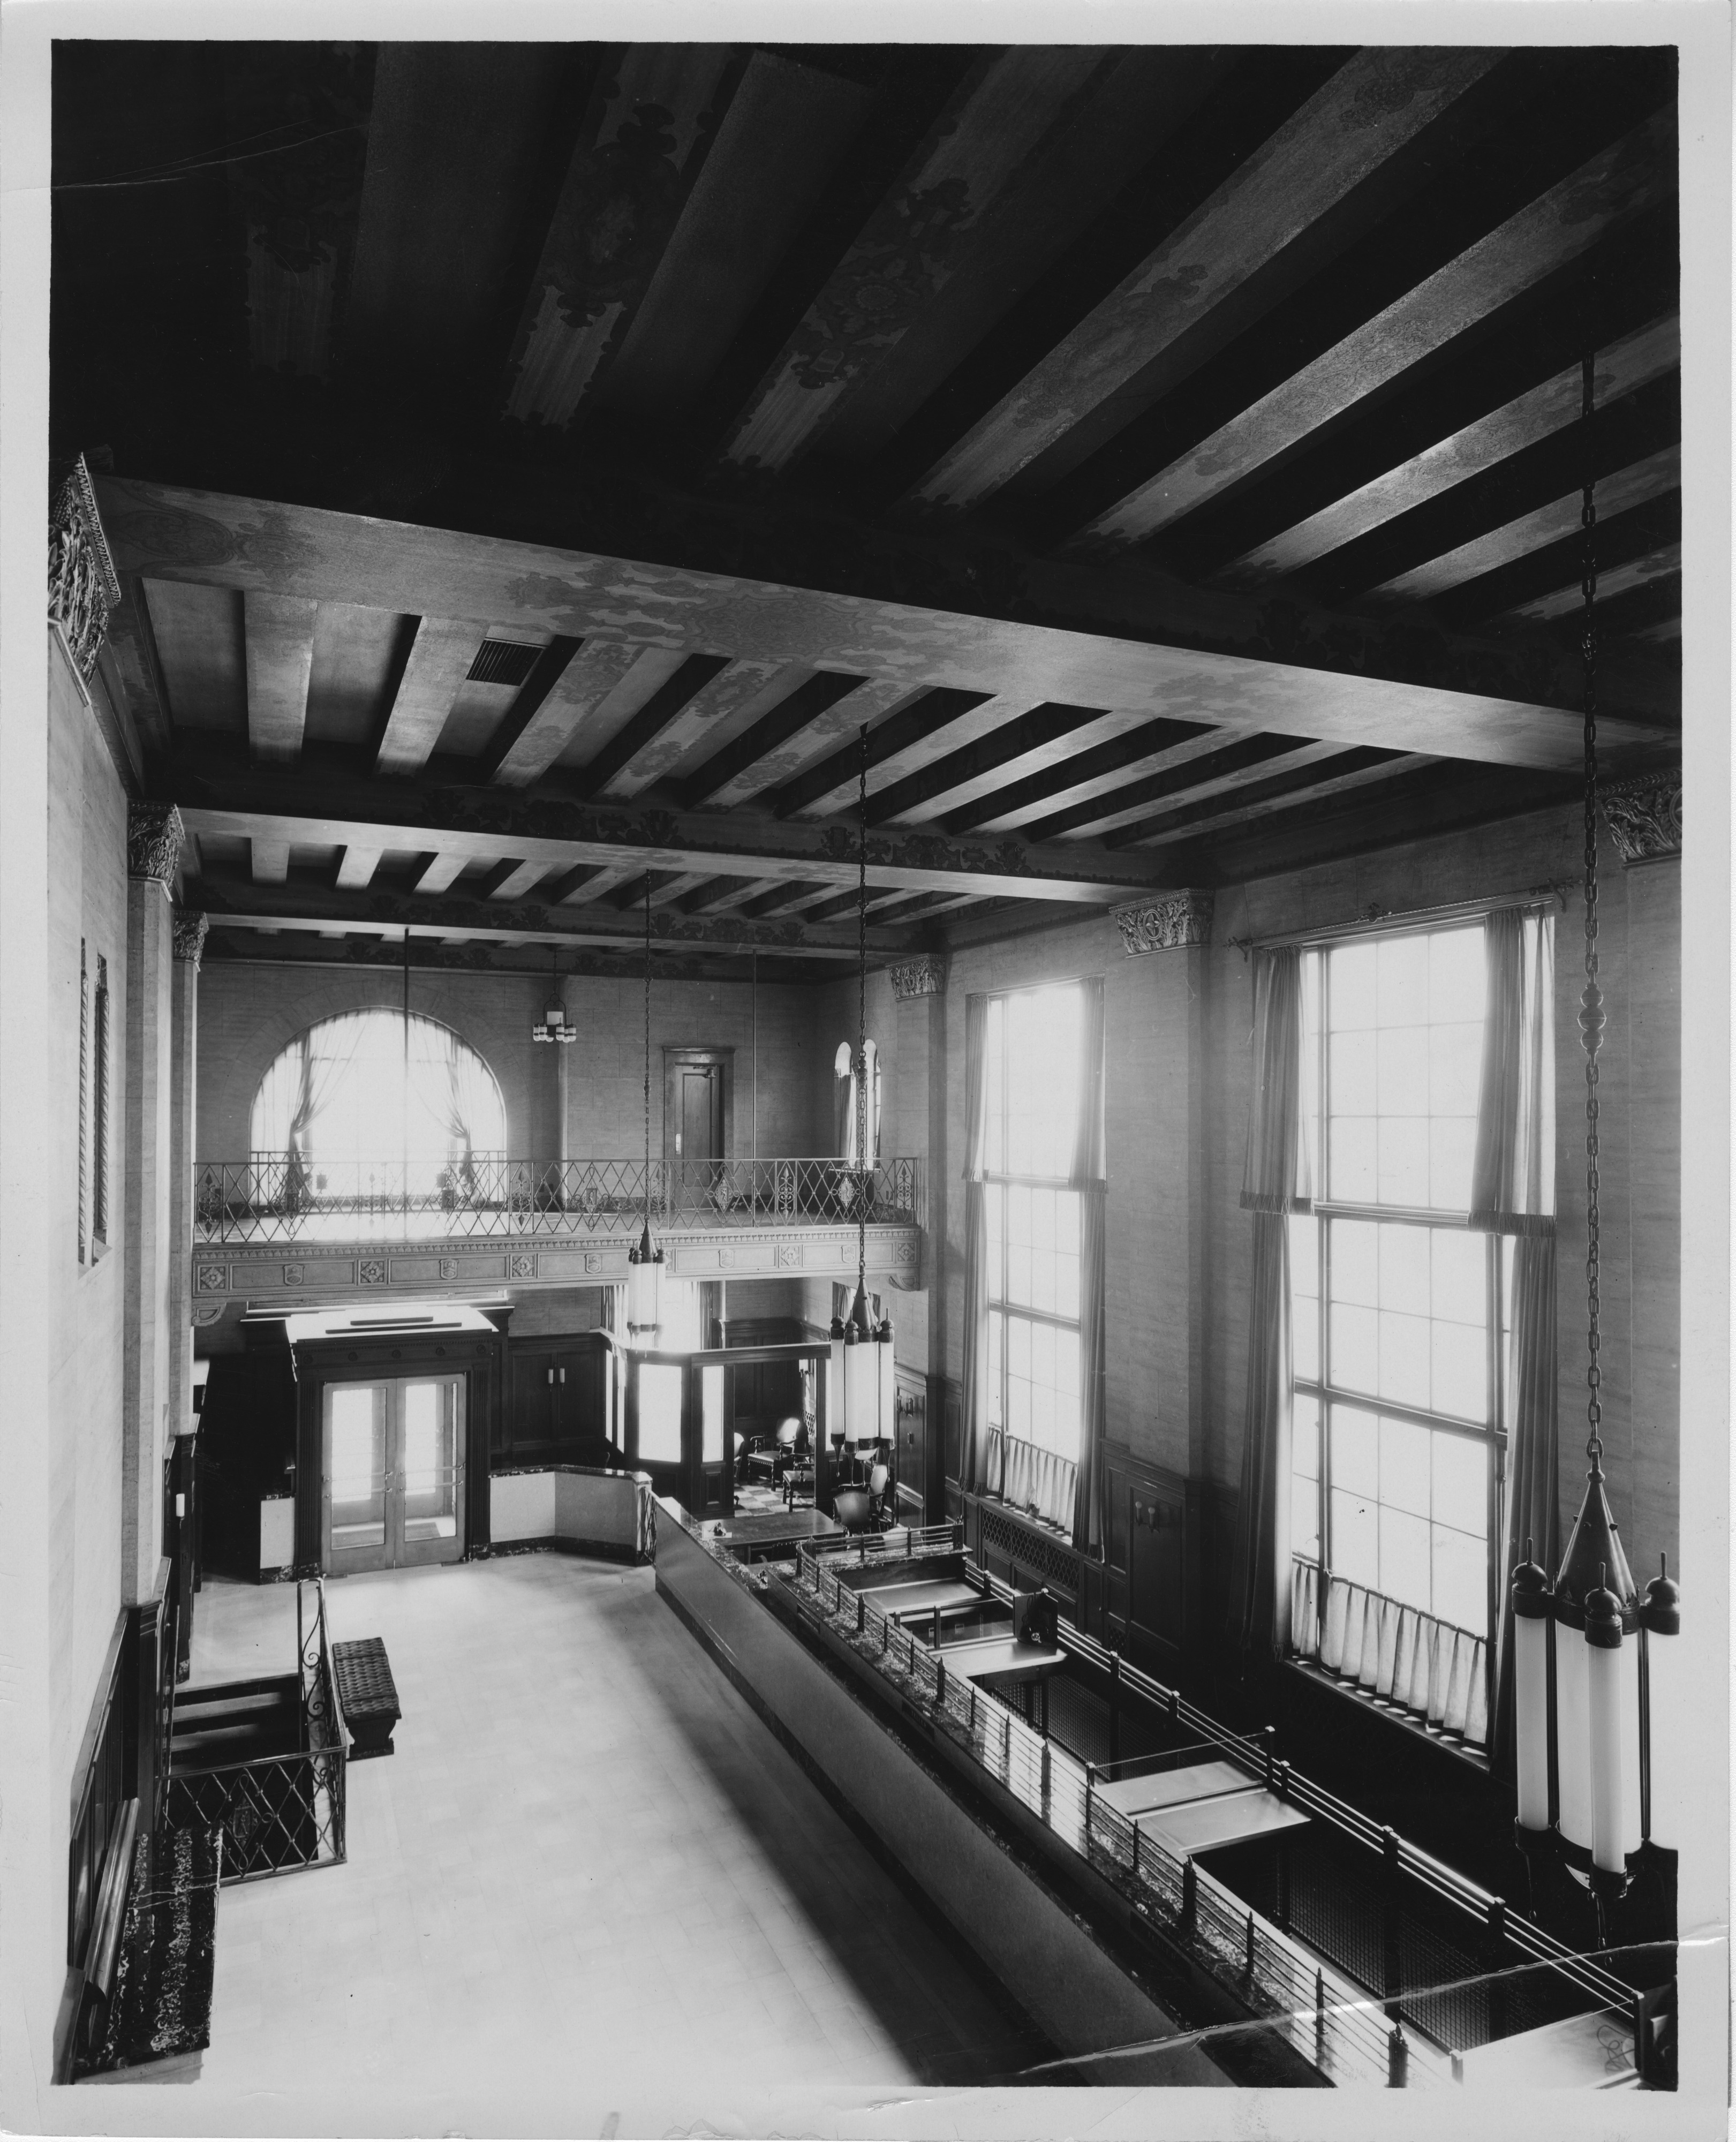 Interior of First National Bank of Ann Arbor, circa 1930 image